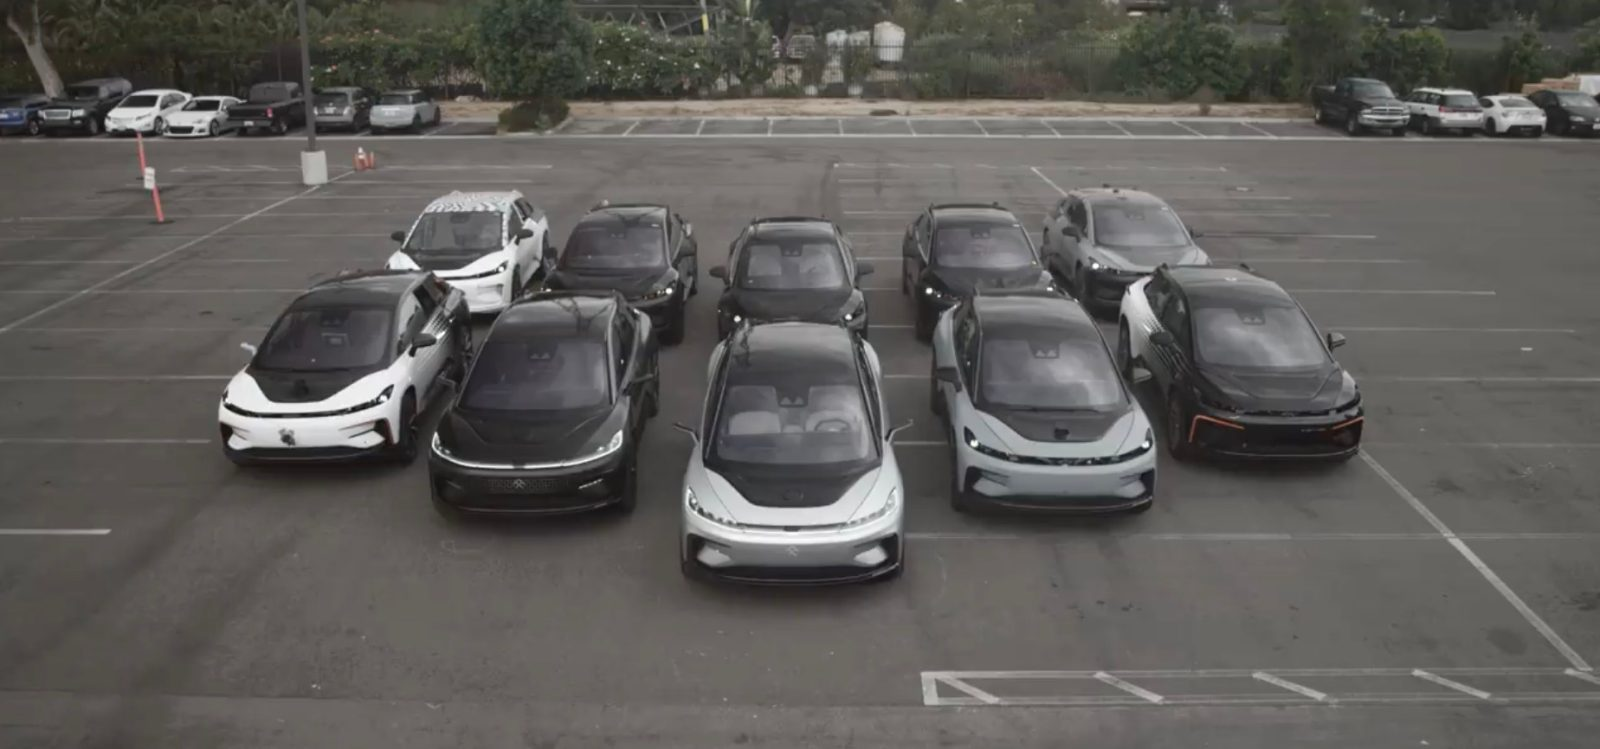 Faraday Future Teases Fleet Of Ff91 Electric Car Prototypes As It Still Aims For Launch This Year